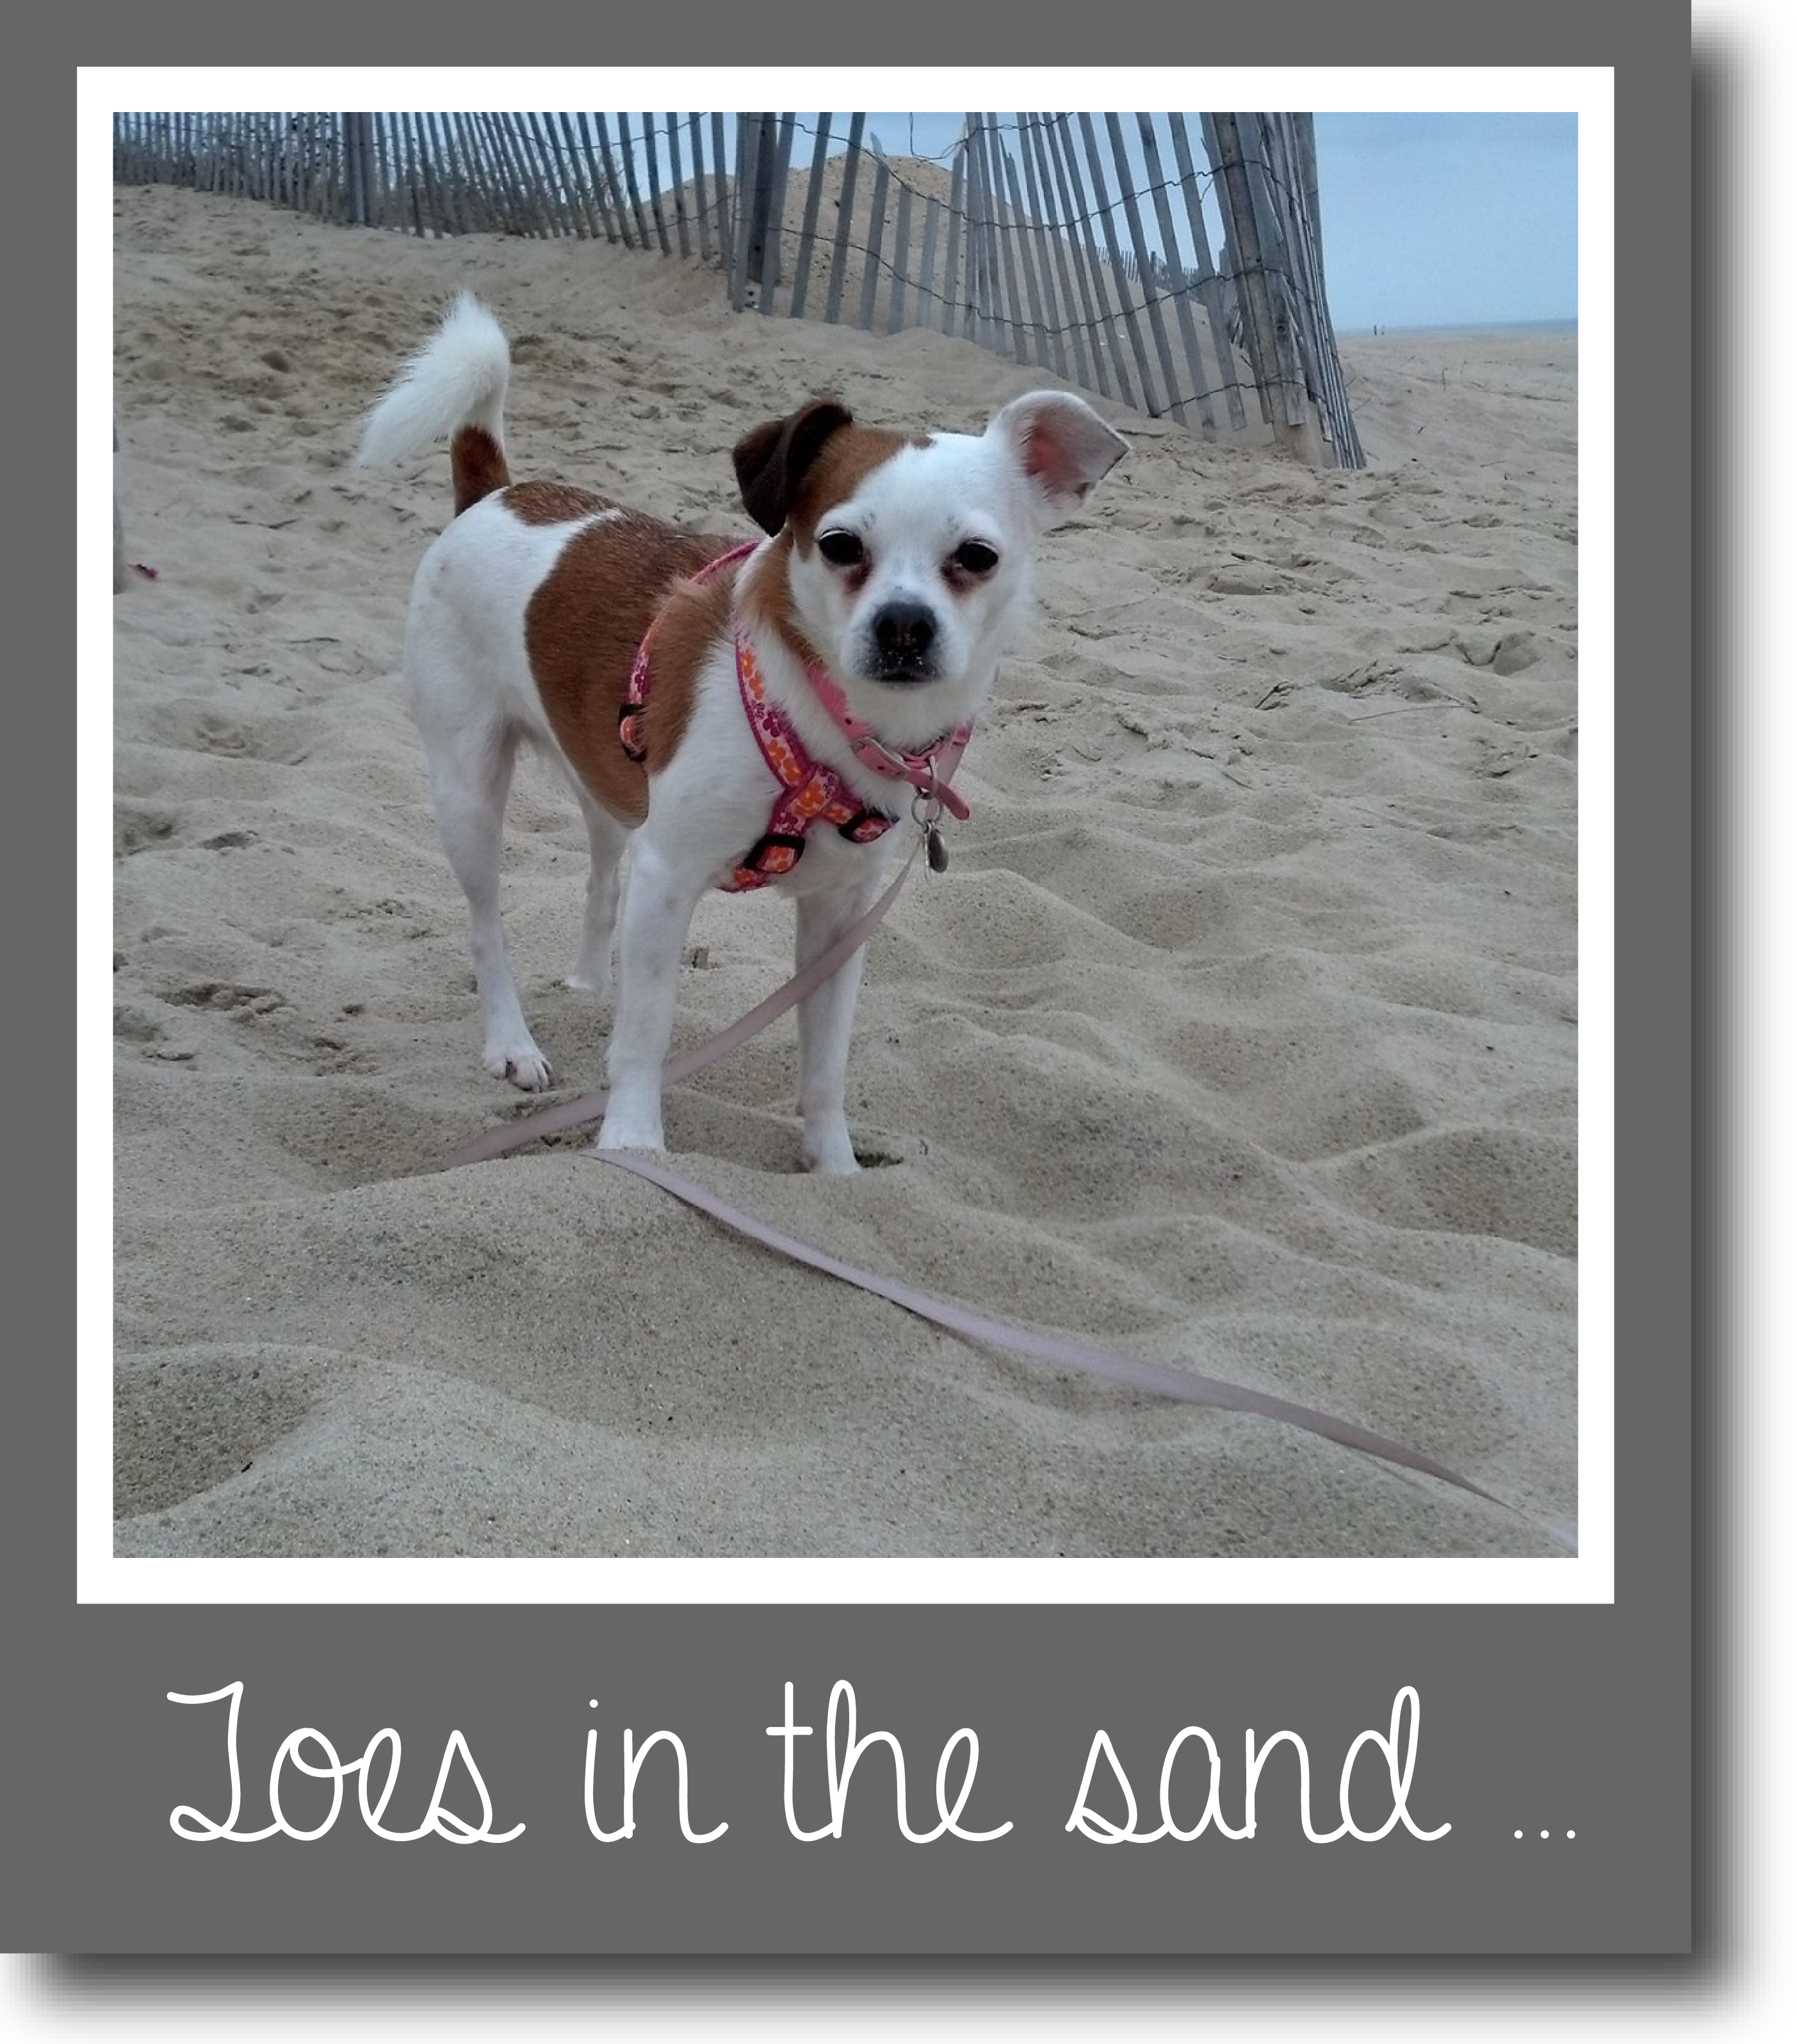 Tilly's Travels - Toes in the sand